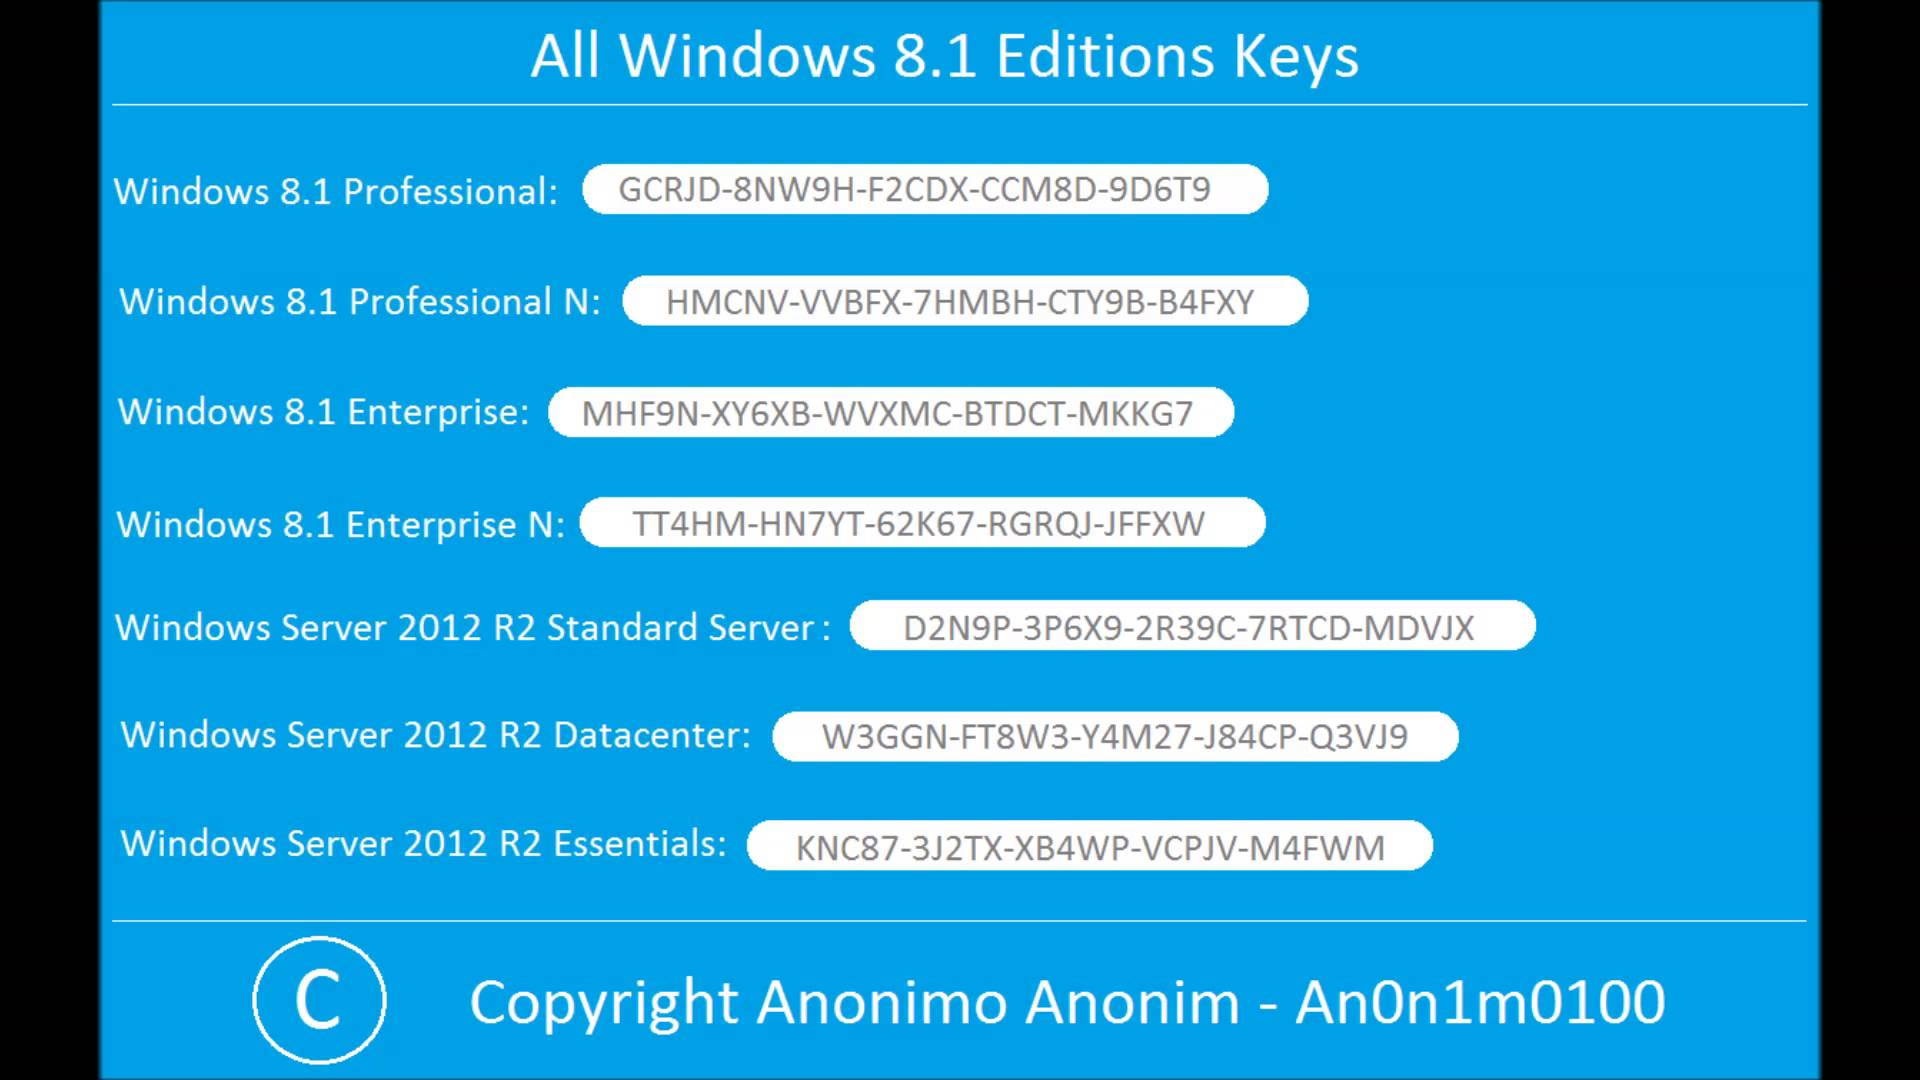 product key of windows 8.1 pro